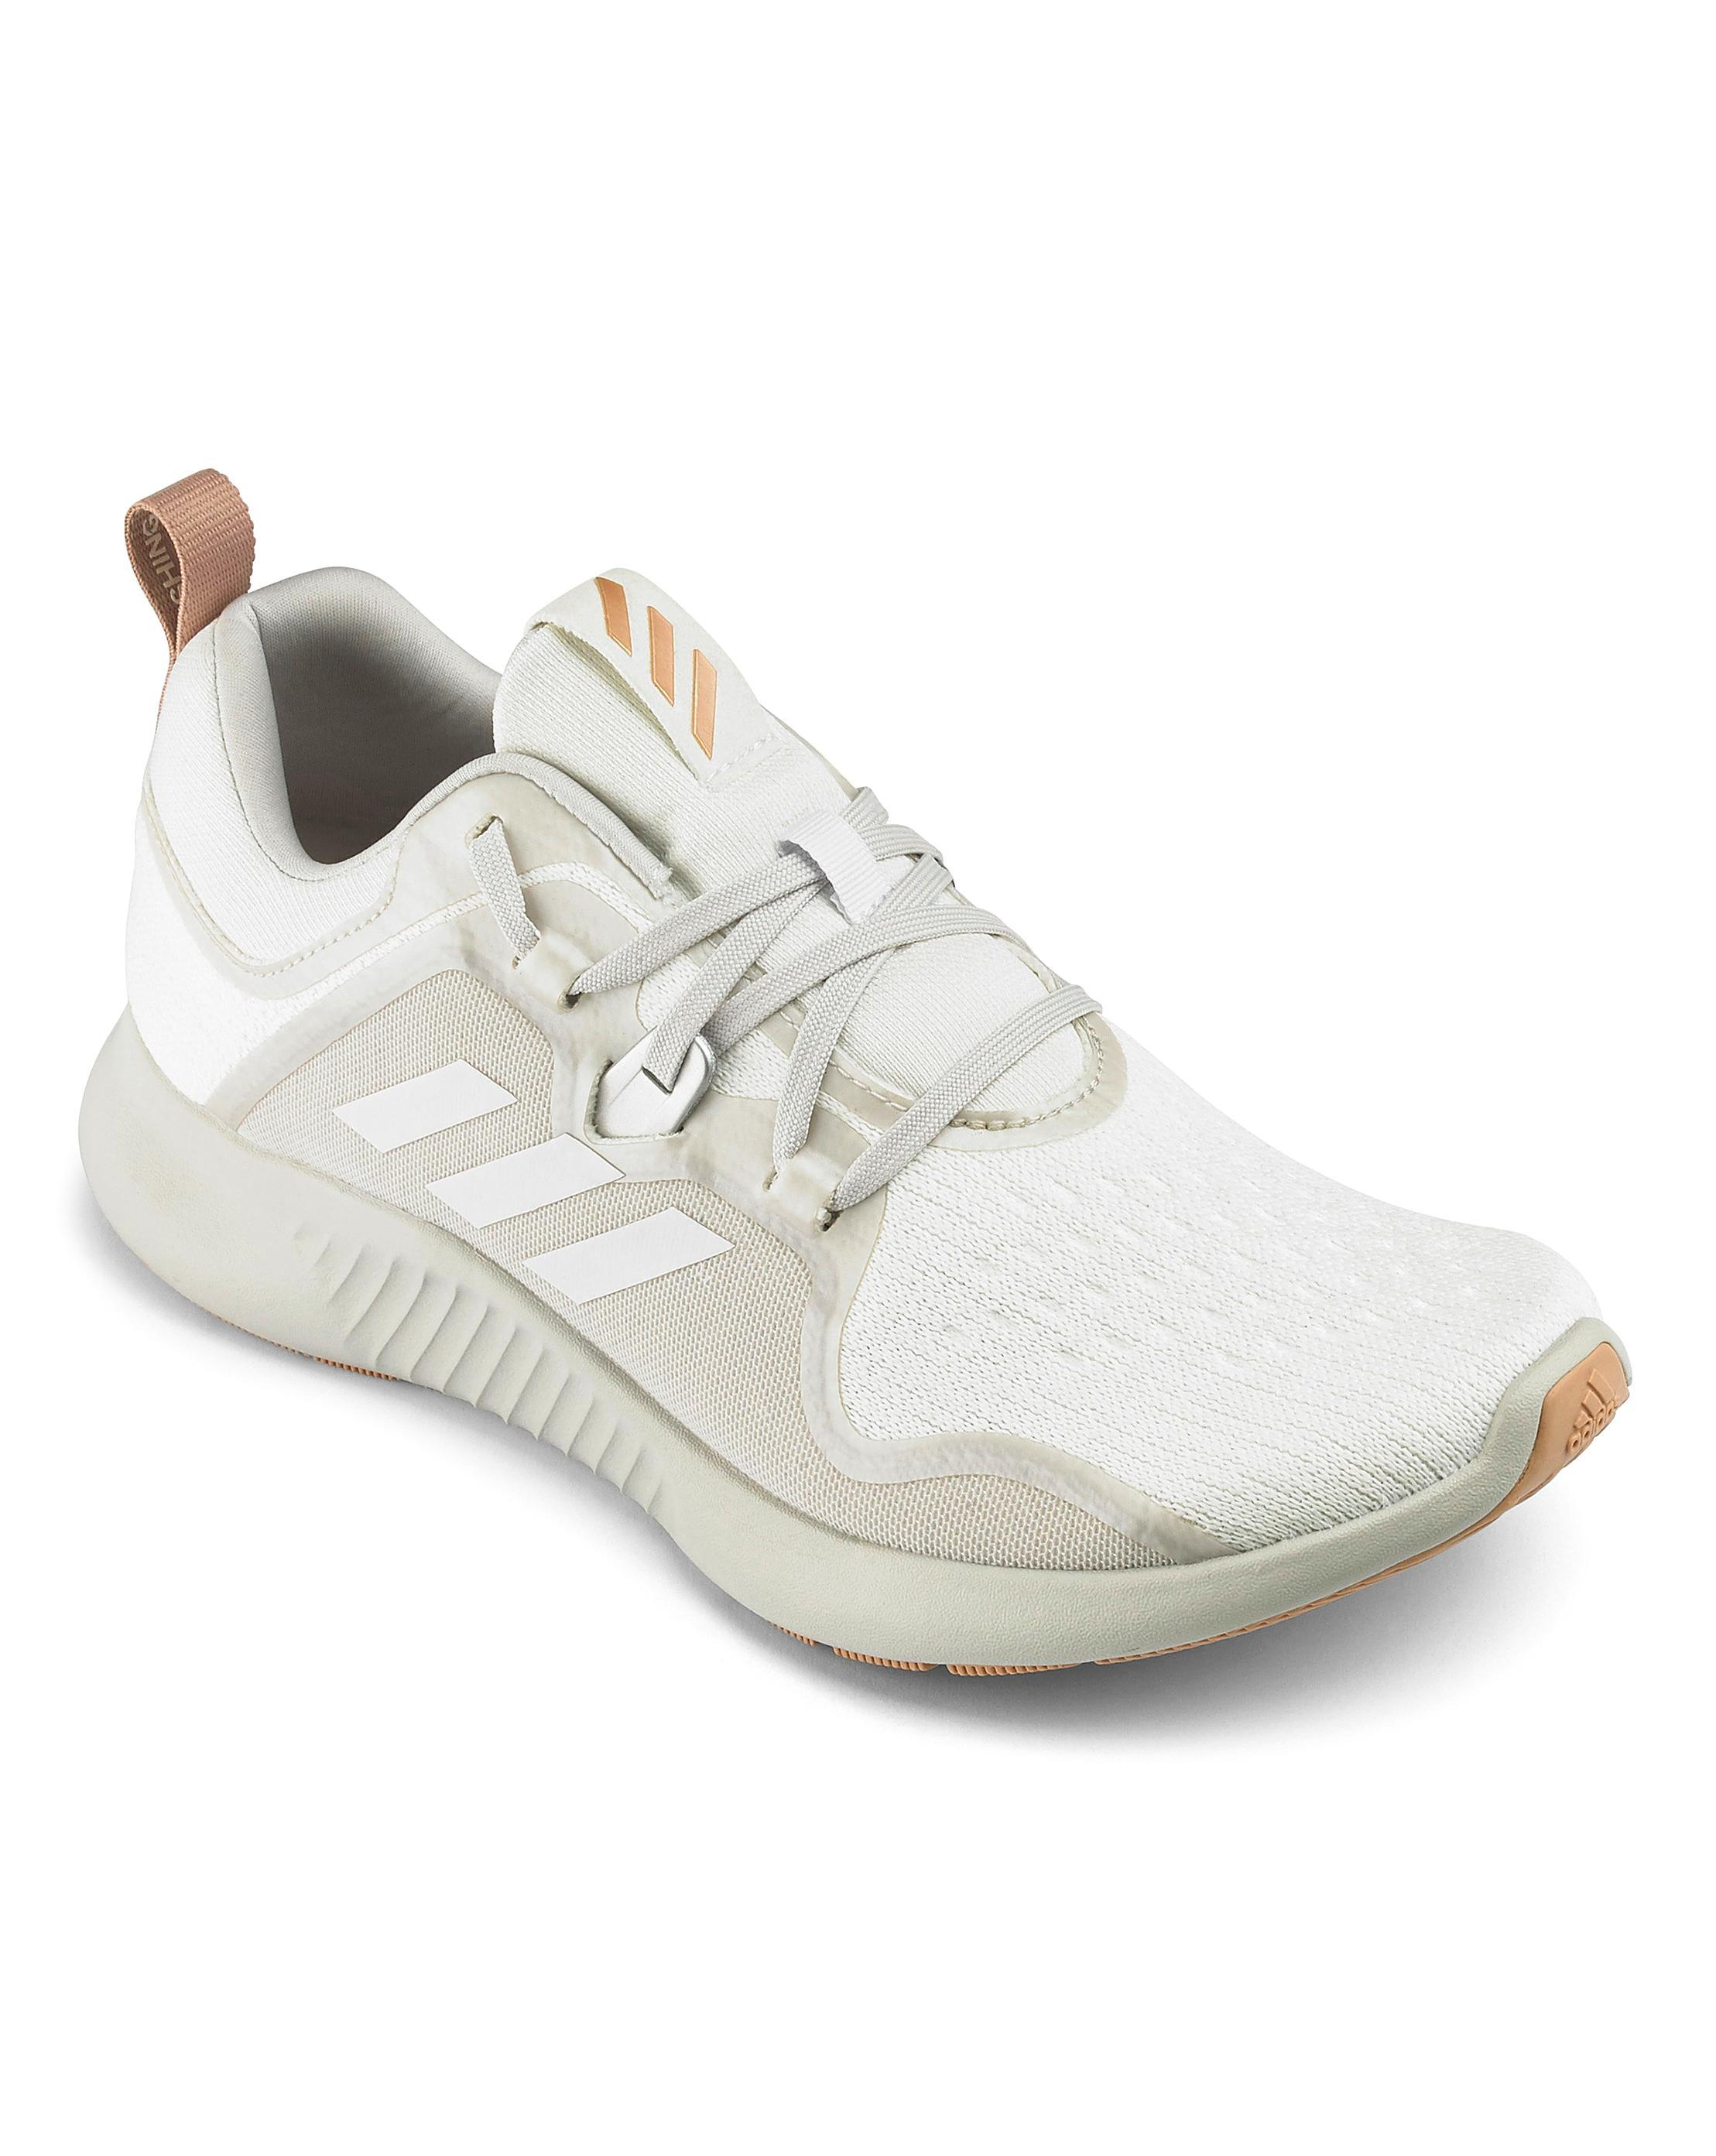 343d3b9a42a83 Lyst - Simply Be Adidas Edgebounce Sneakers in White